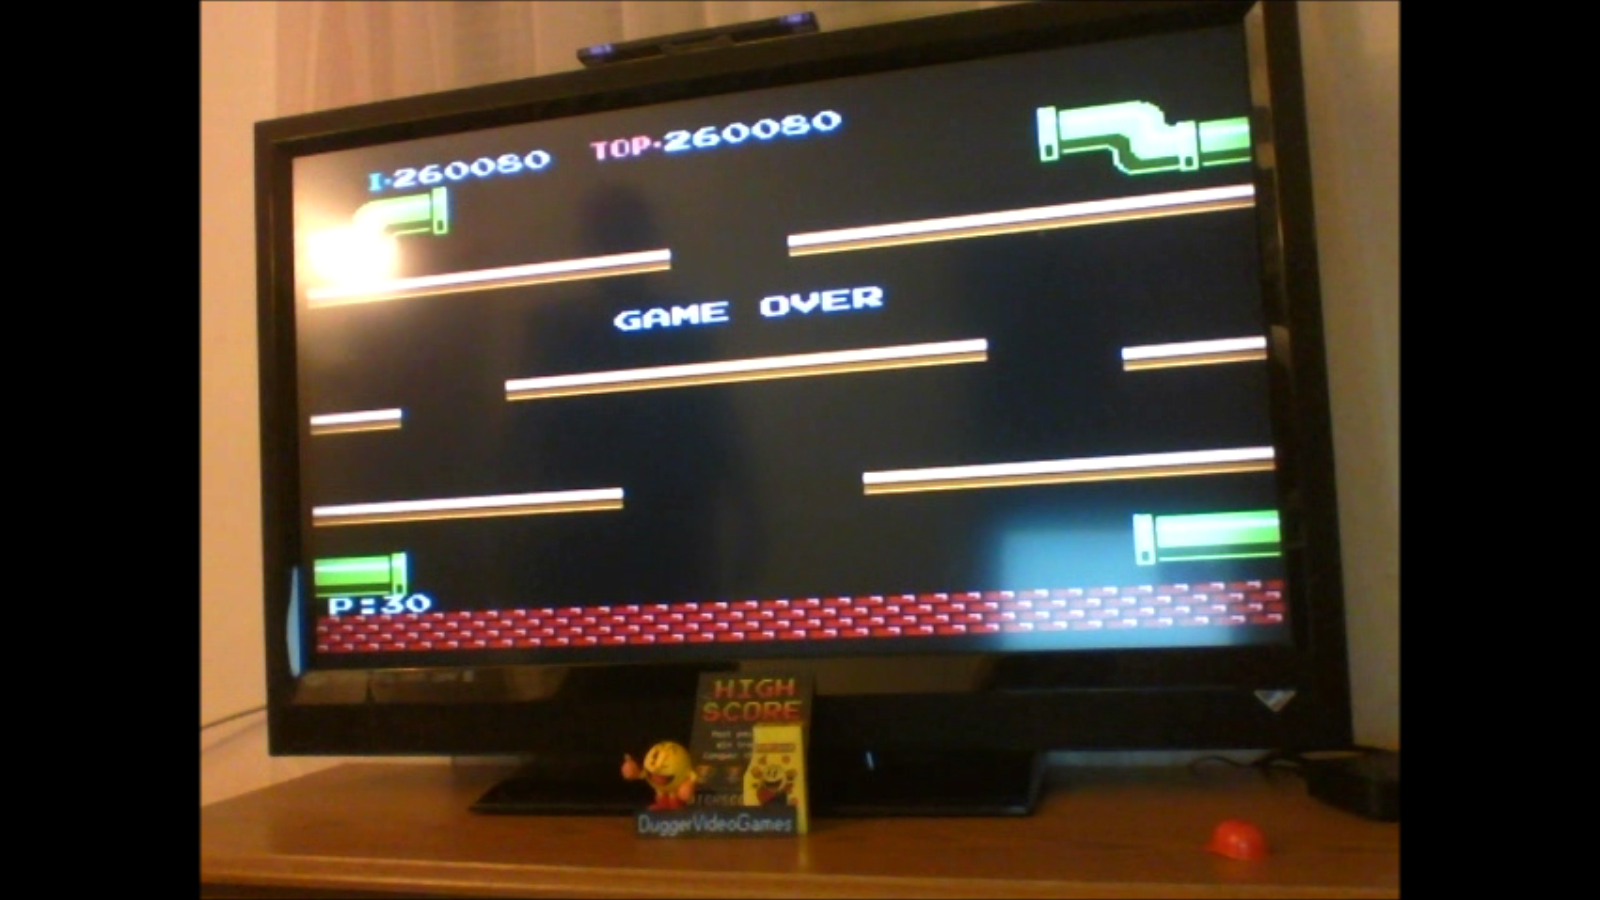 DuggerVideoGames: Mario Bros. (NES/Famicom Emulated) 260,080 points on 2016-11-16 04:25:26